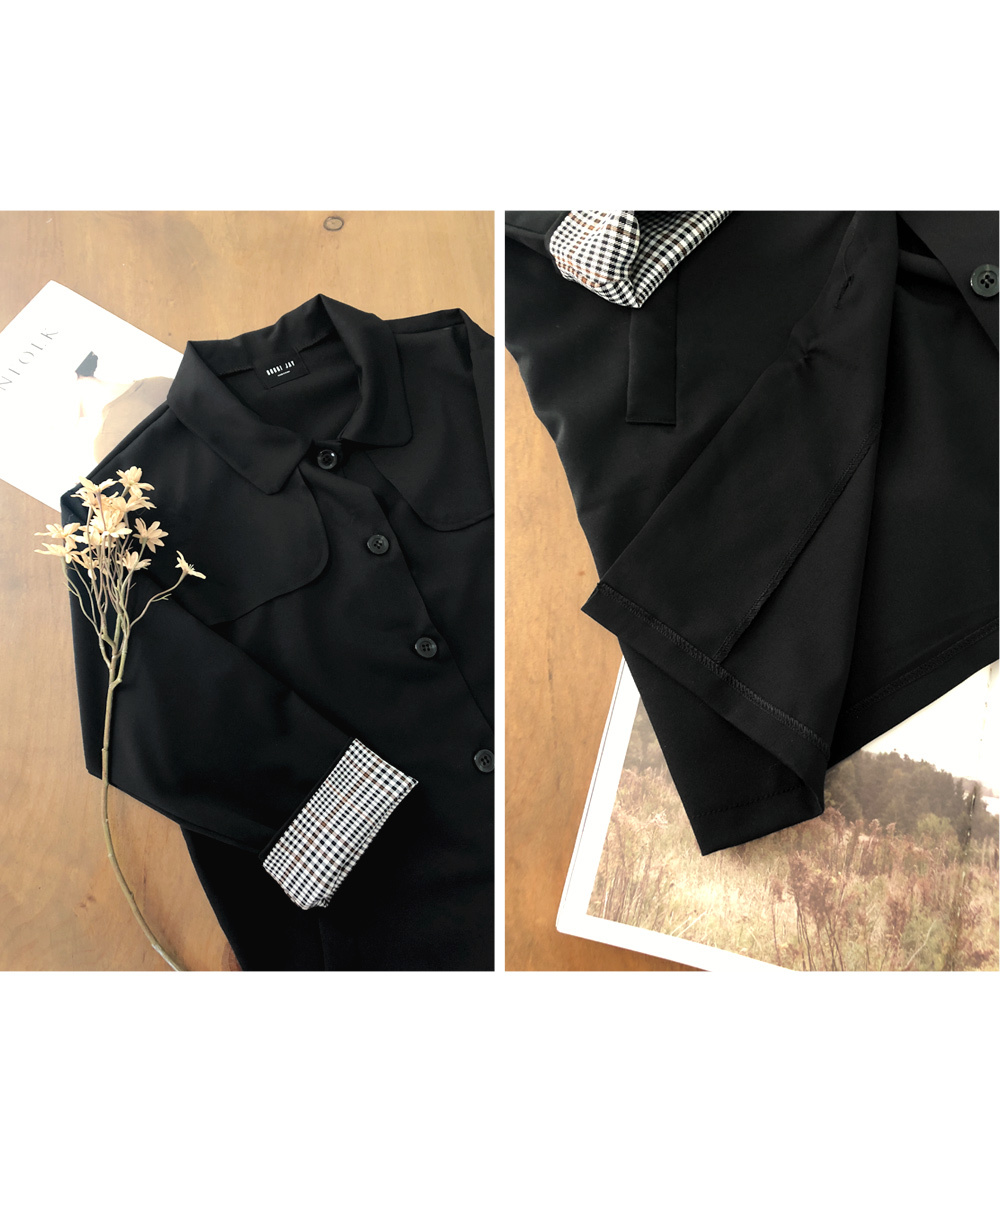 Jacket with an edge